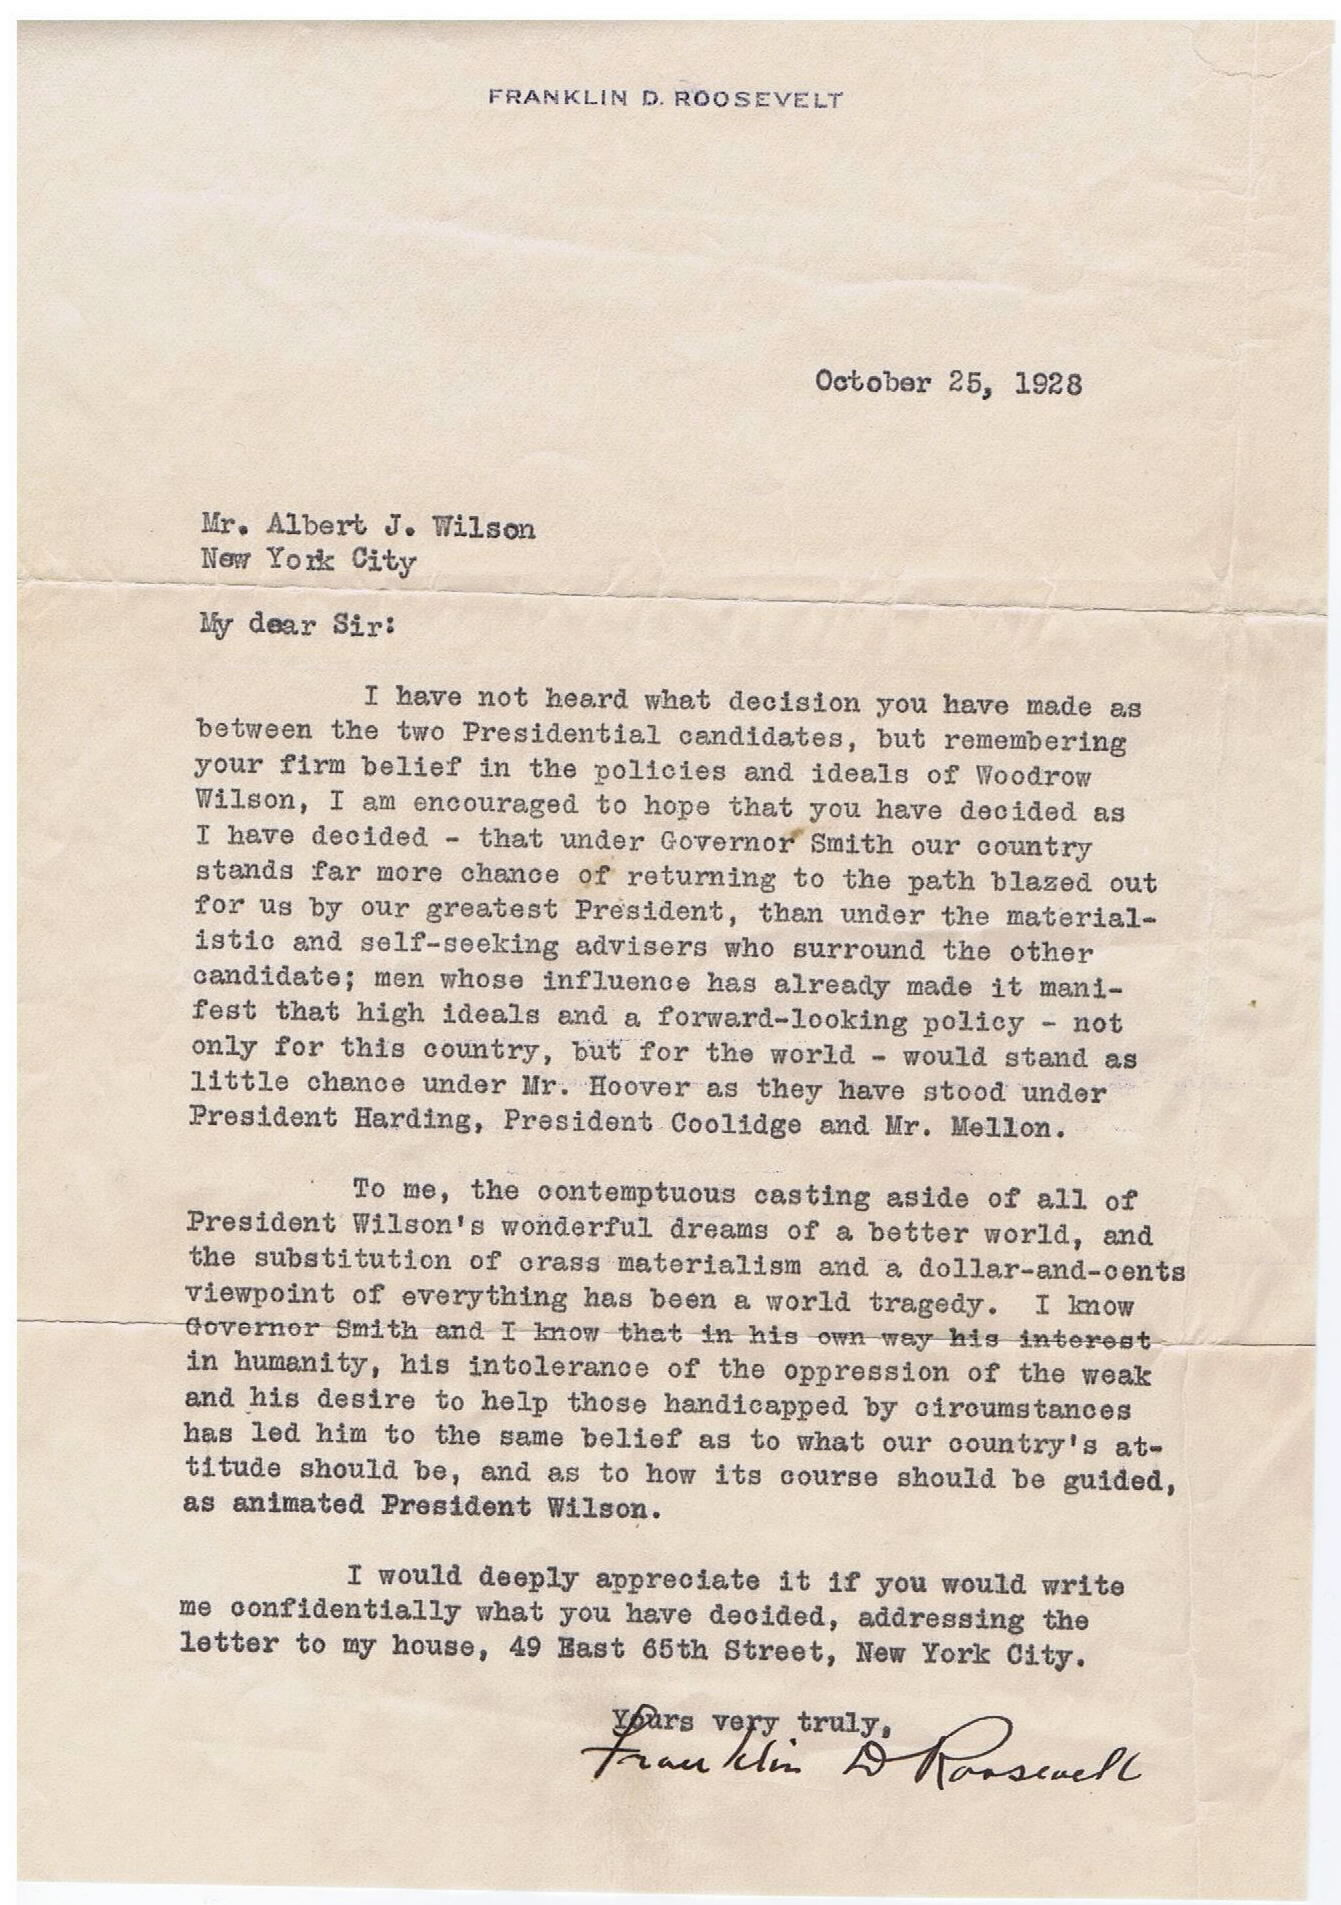 FDR Personal Letter to a friend